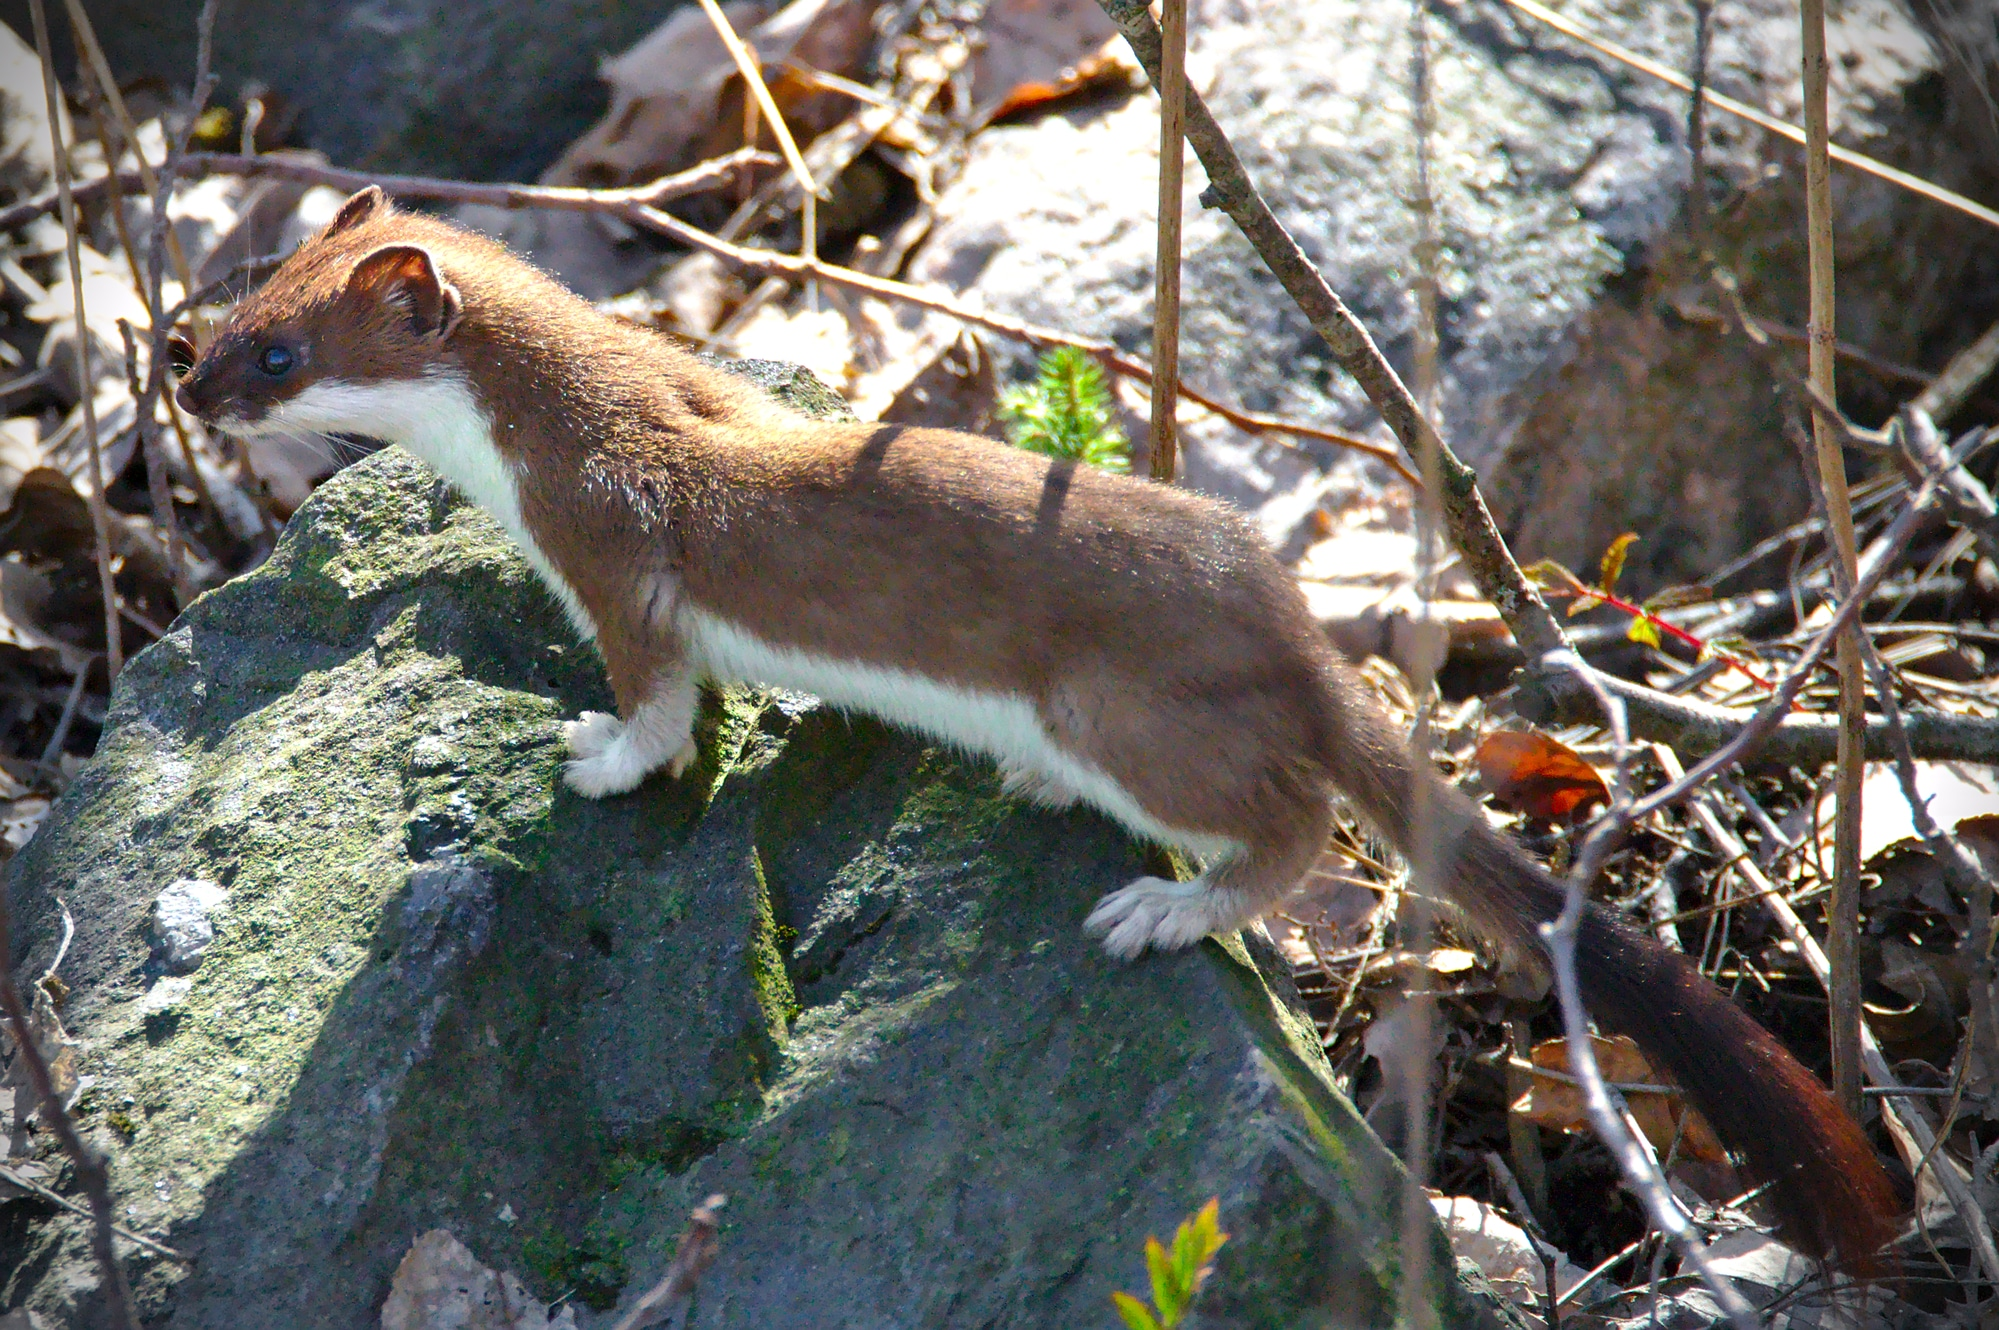 Brown and white furry weasel with a long tail